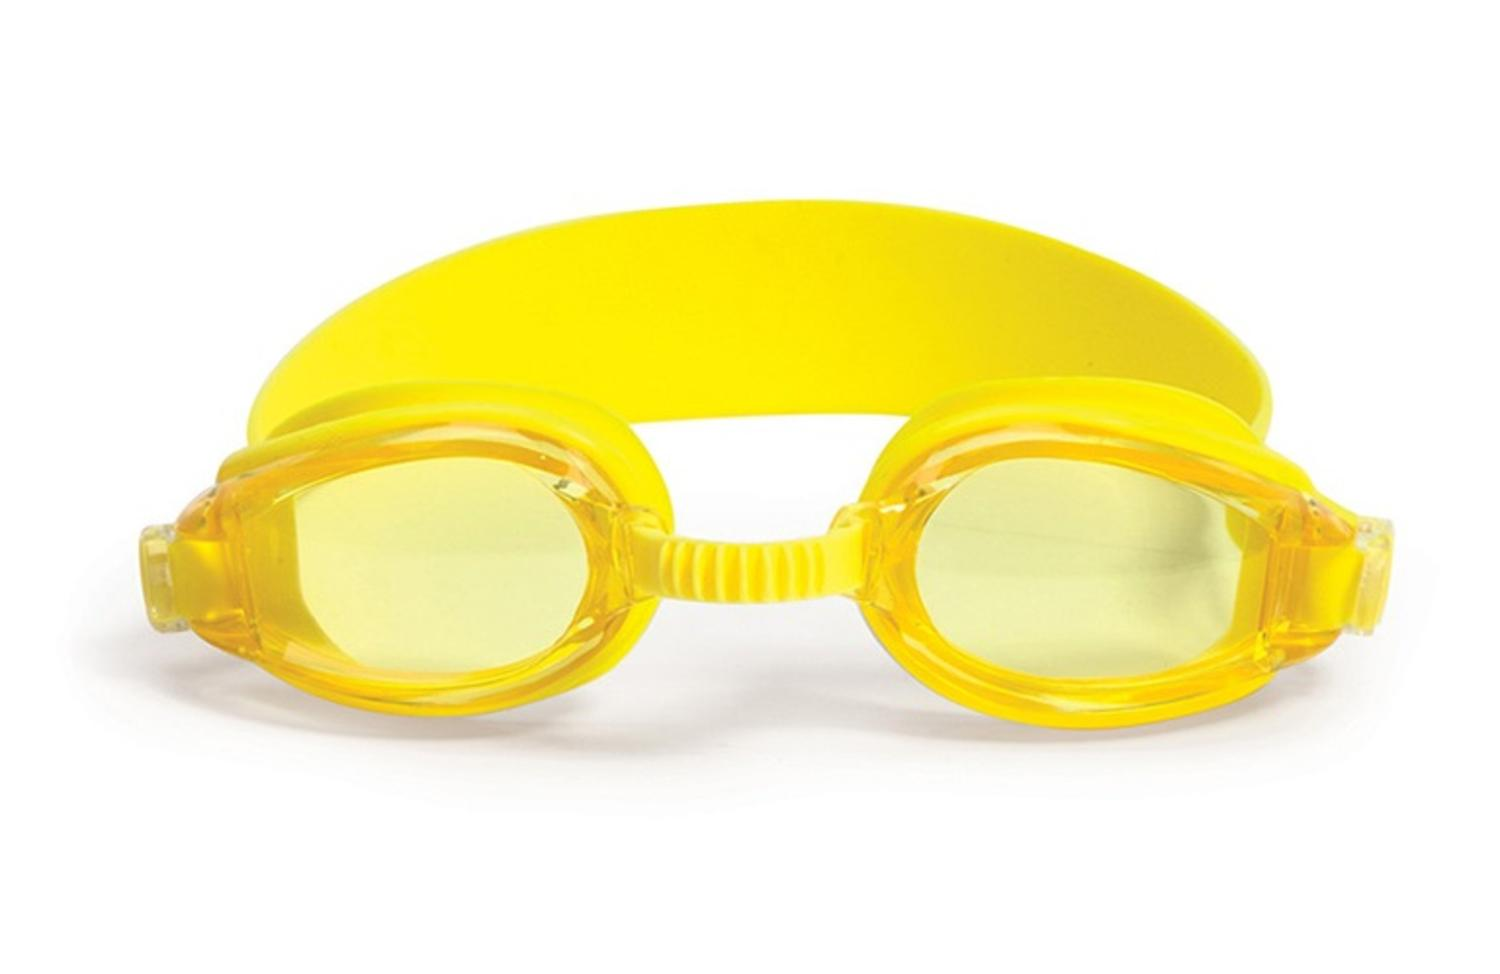 """6.25"""" Advantage Yellow Goggles Swimming Pool Accessory for Juniors by Swim Central"""